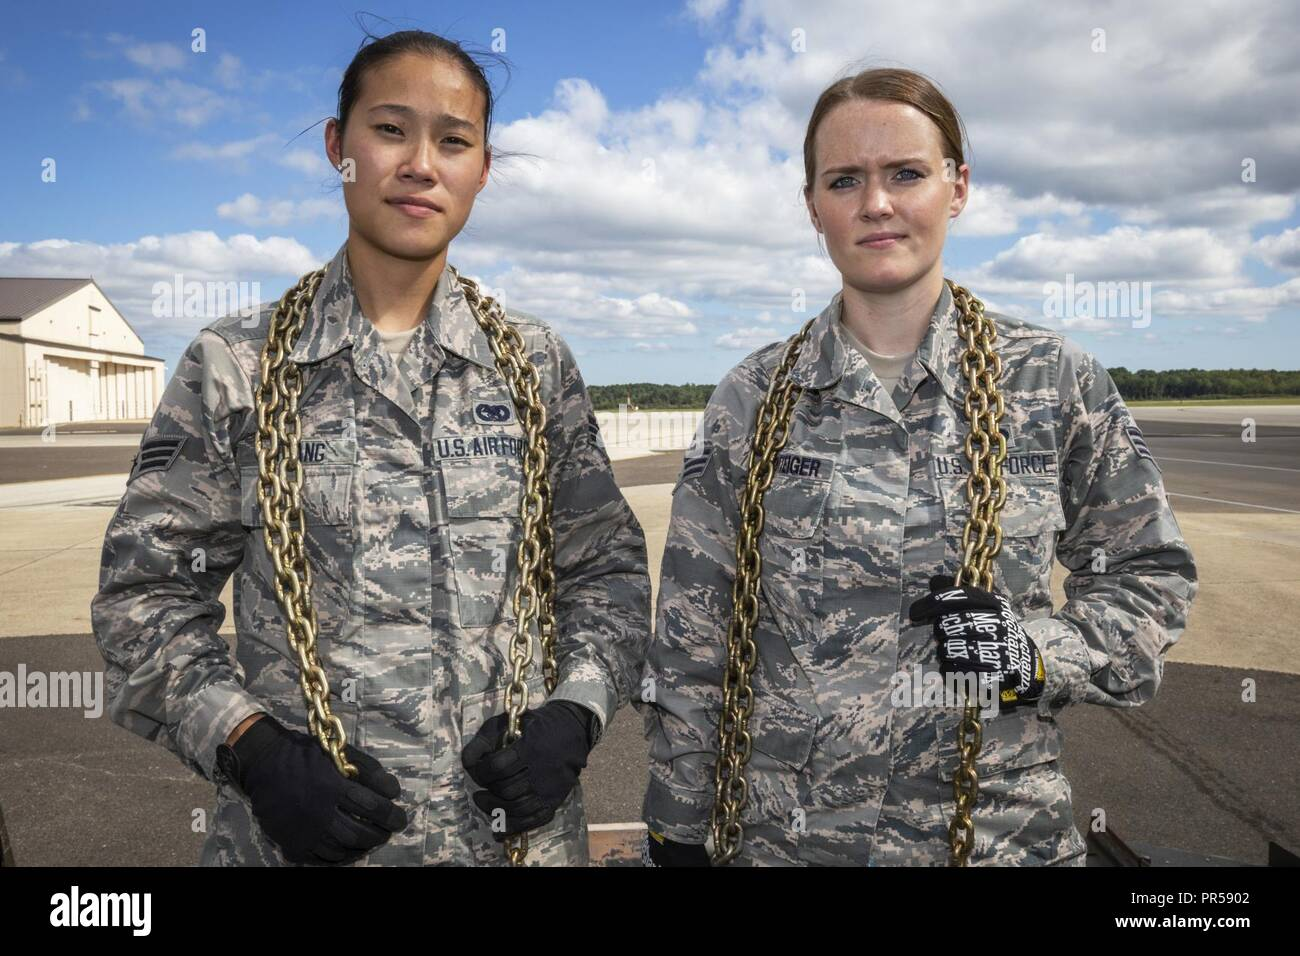 Portrait of U.S. Air Force Senior Airmen Vince Tsang, left, and Dannielle Potteiger, both with the 88th Aerial Port Squadron, 514th Air Mobility Wing, at Joint Base McGuire-Dix-Lakehurst, N.J., Sept. 15, 2018. The 514th is an Air Force Reserve Command Unit. - Stock Image